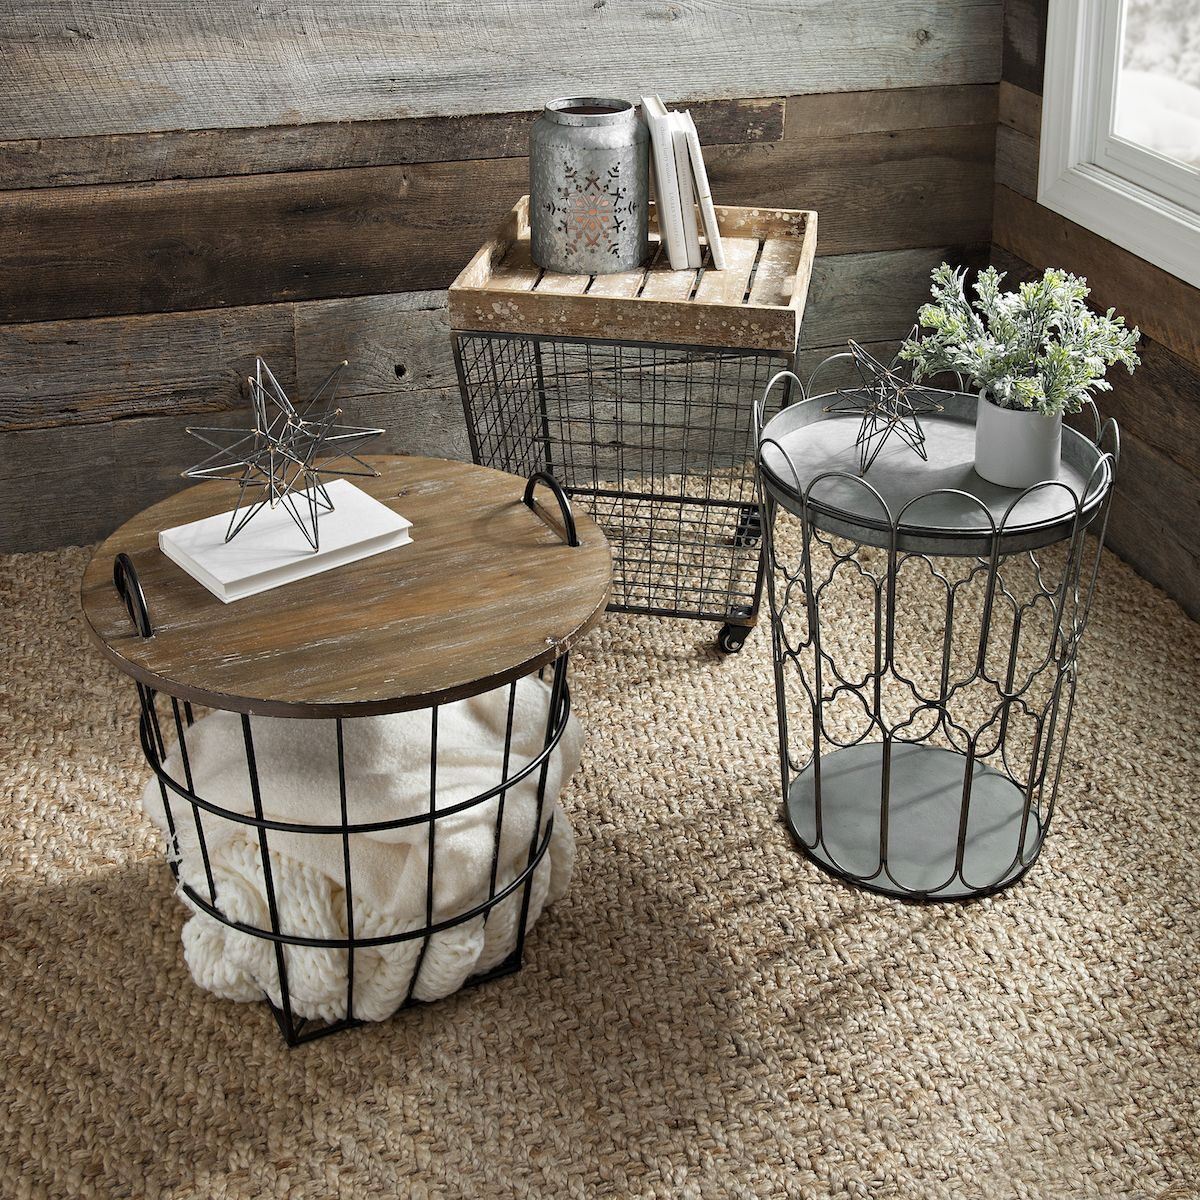 Delicieux Our Wire Crate Accent Tables Have The Storage And Function You Need!  Theyu0027re A Smart Way To Cut The Clutter.